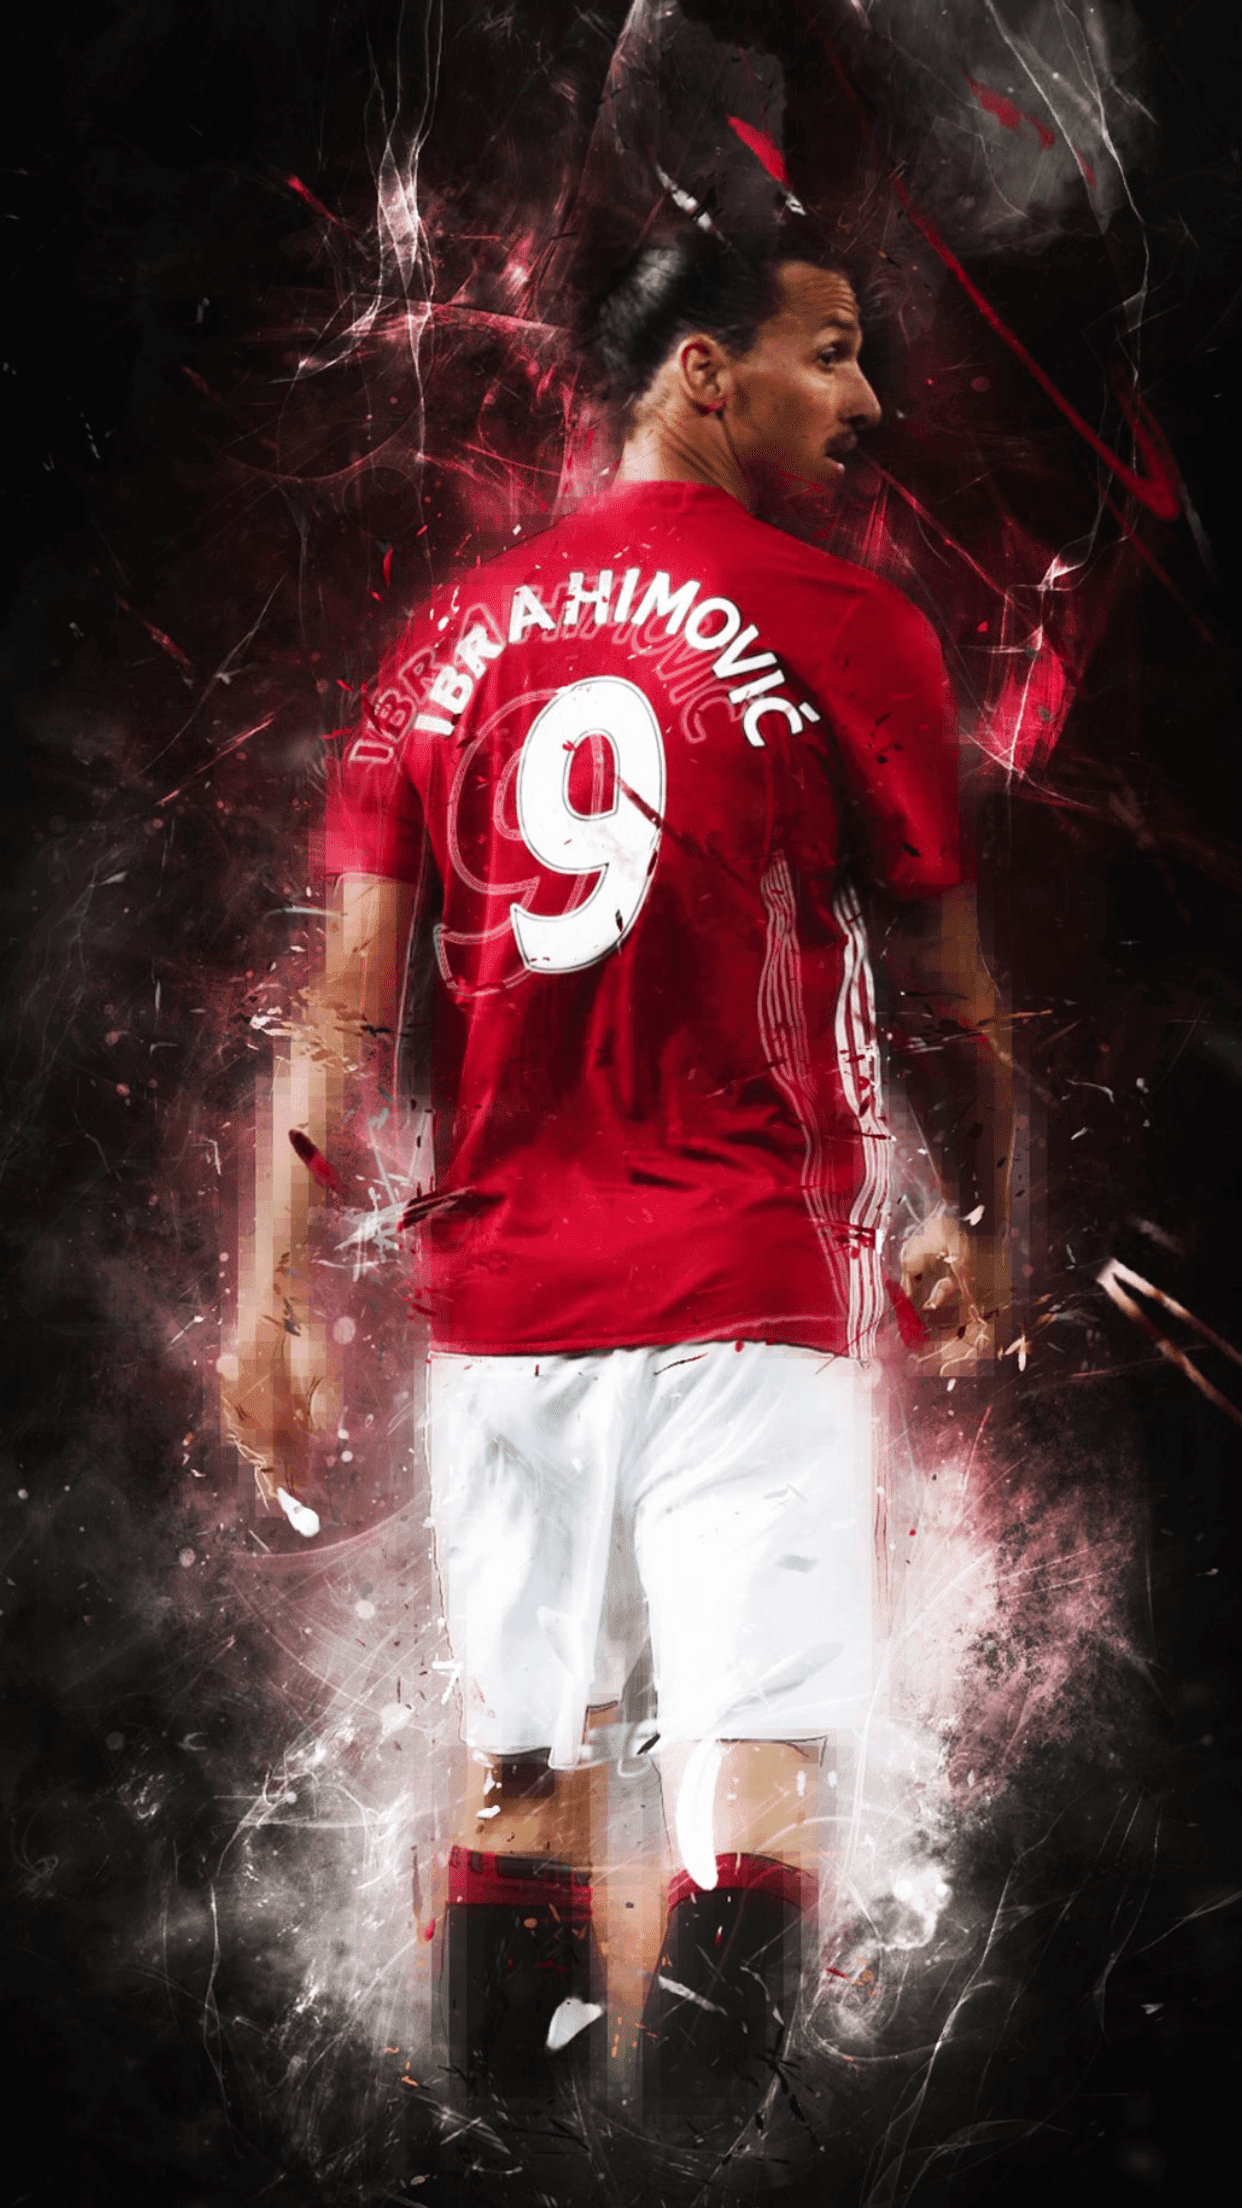 Manchester United Players 2017 Wallpapers - Wallpaper Cave